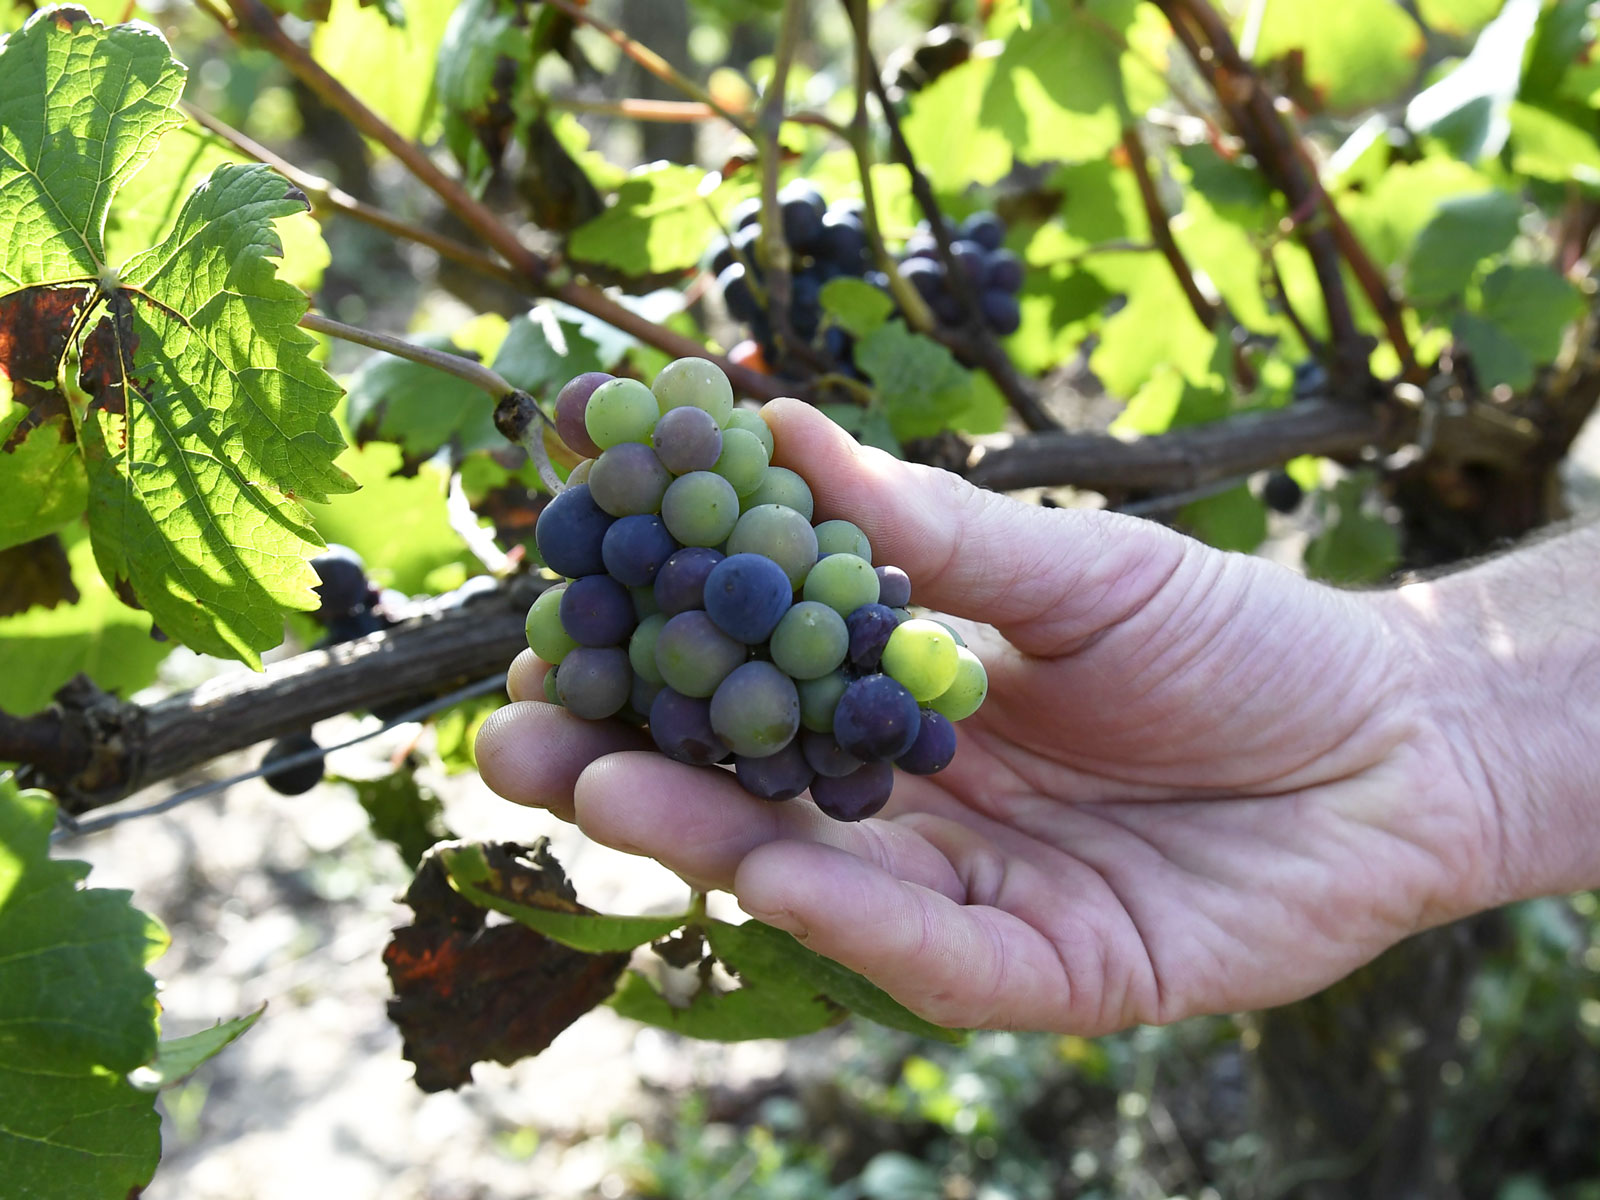 France Changes AOC Rules to Allow Grapes That Can Withstand Climate Change